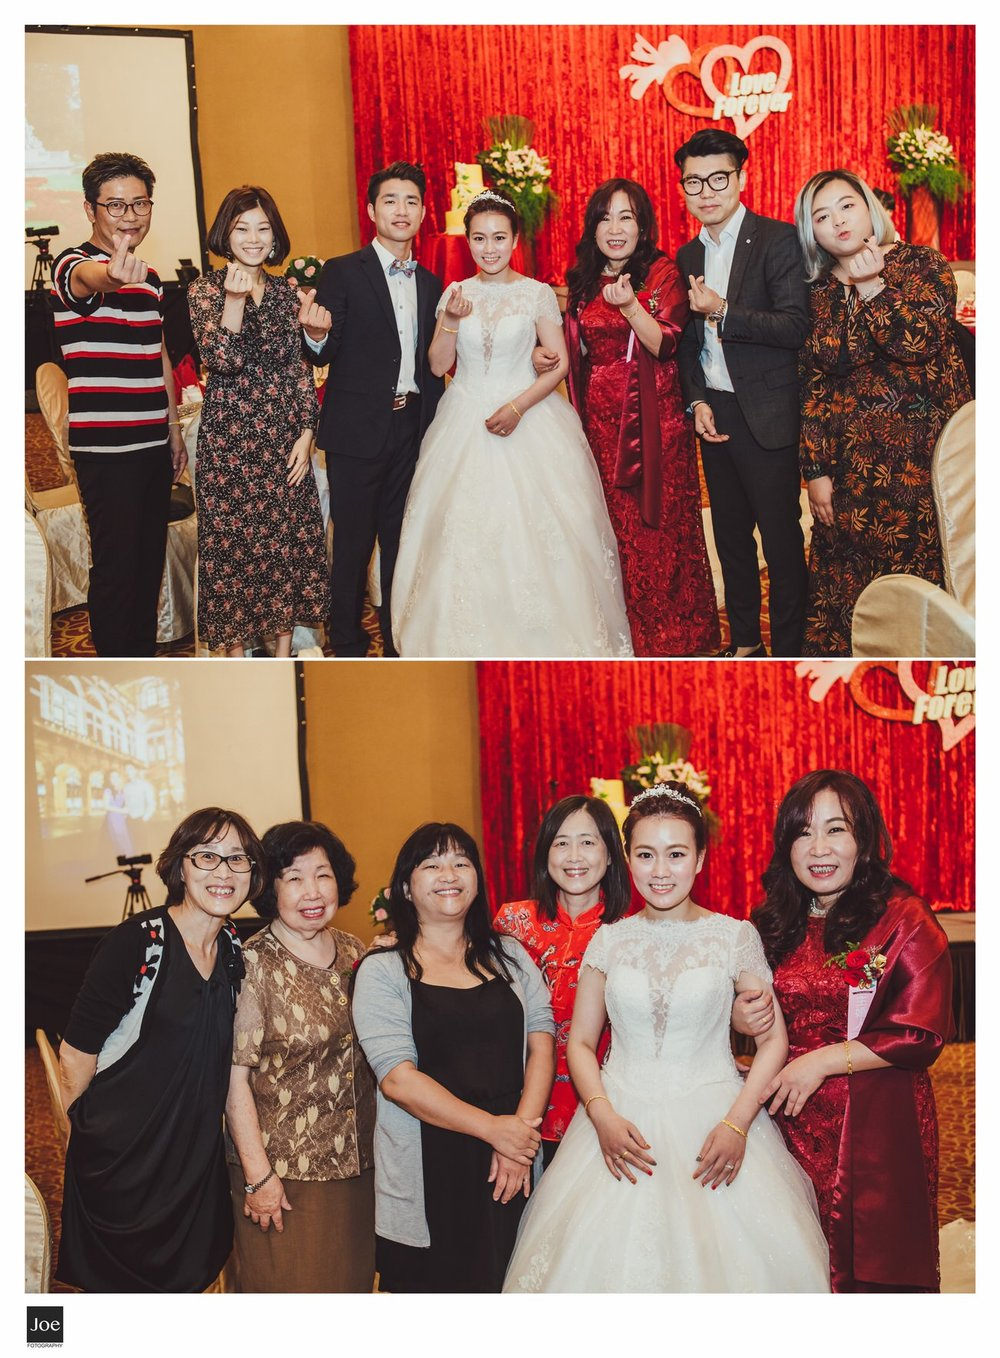 sunworld-dynasty-hotel-taipei-wedding-photo-joe-fotography-angel-jay-069.jpg